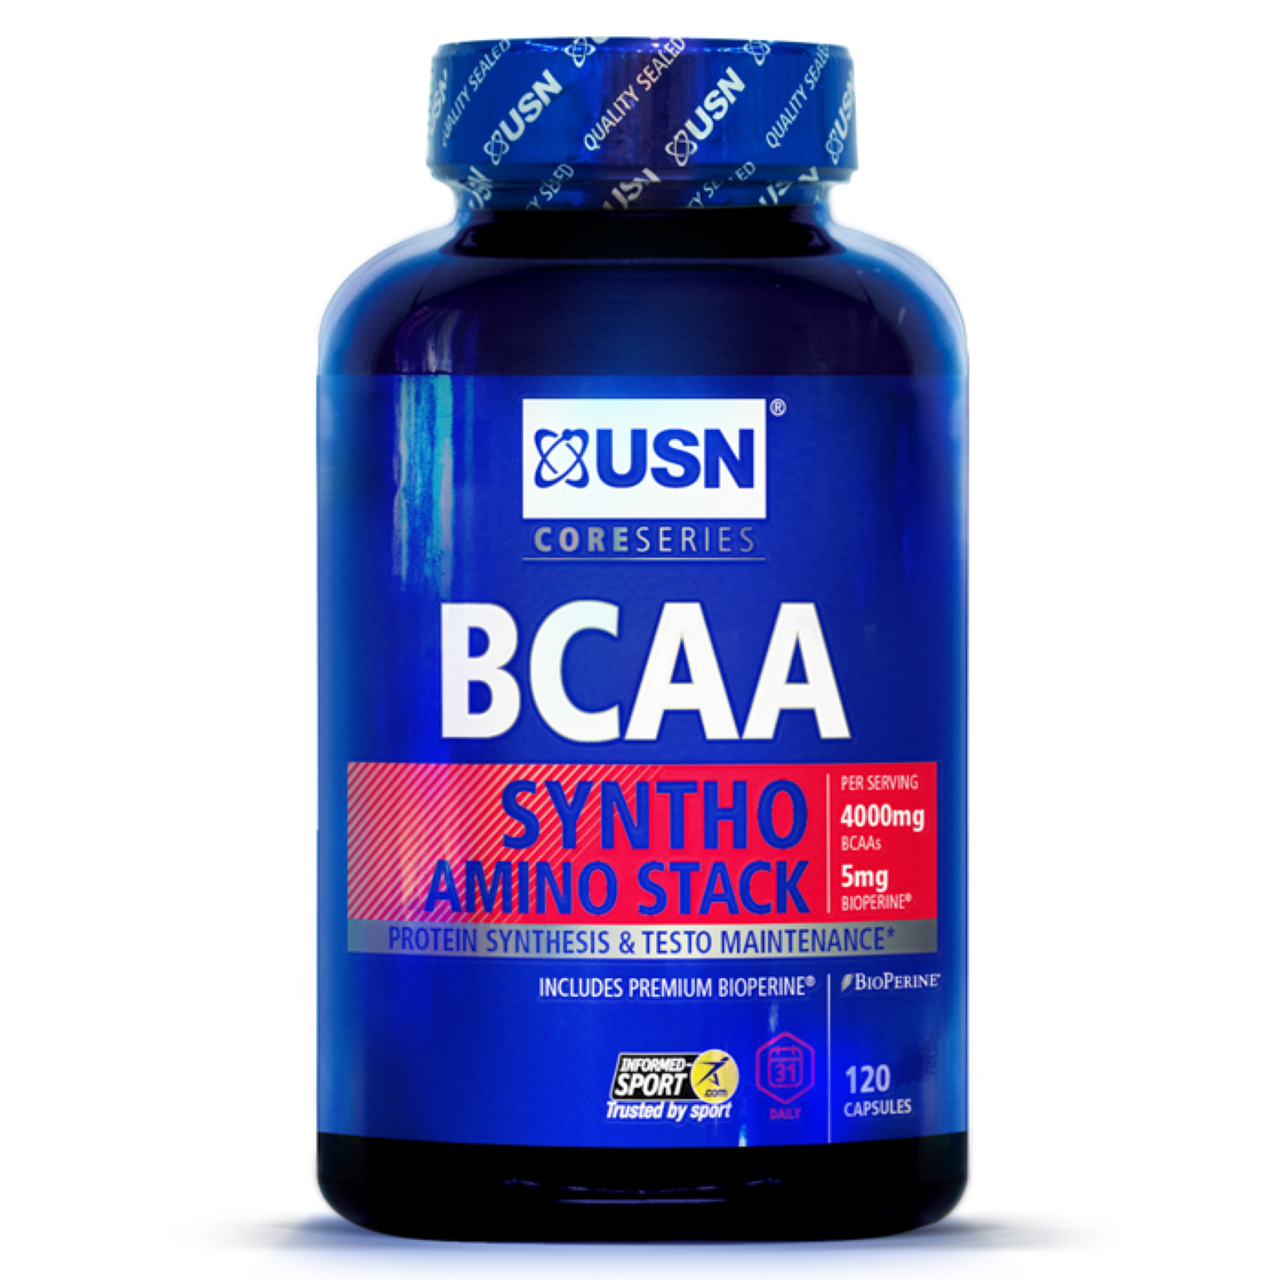 USN BCAA Syntho Stack 120 caps, ЮСН БЦА Синто Стак 120 капс